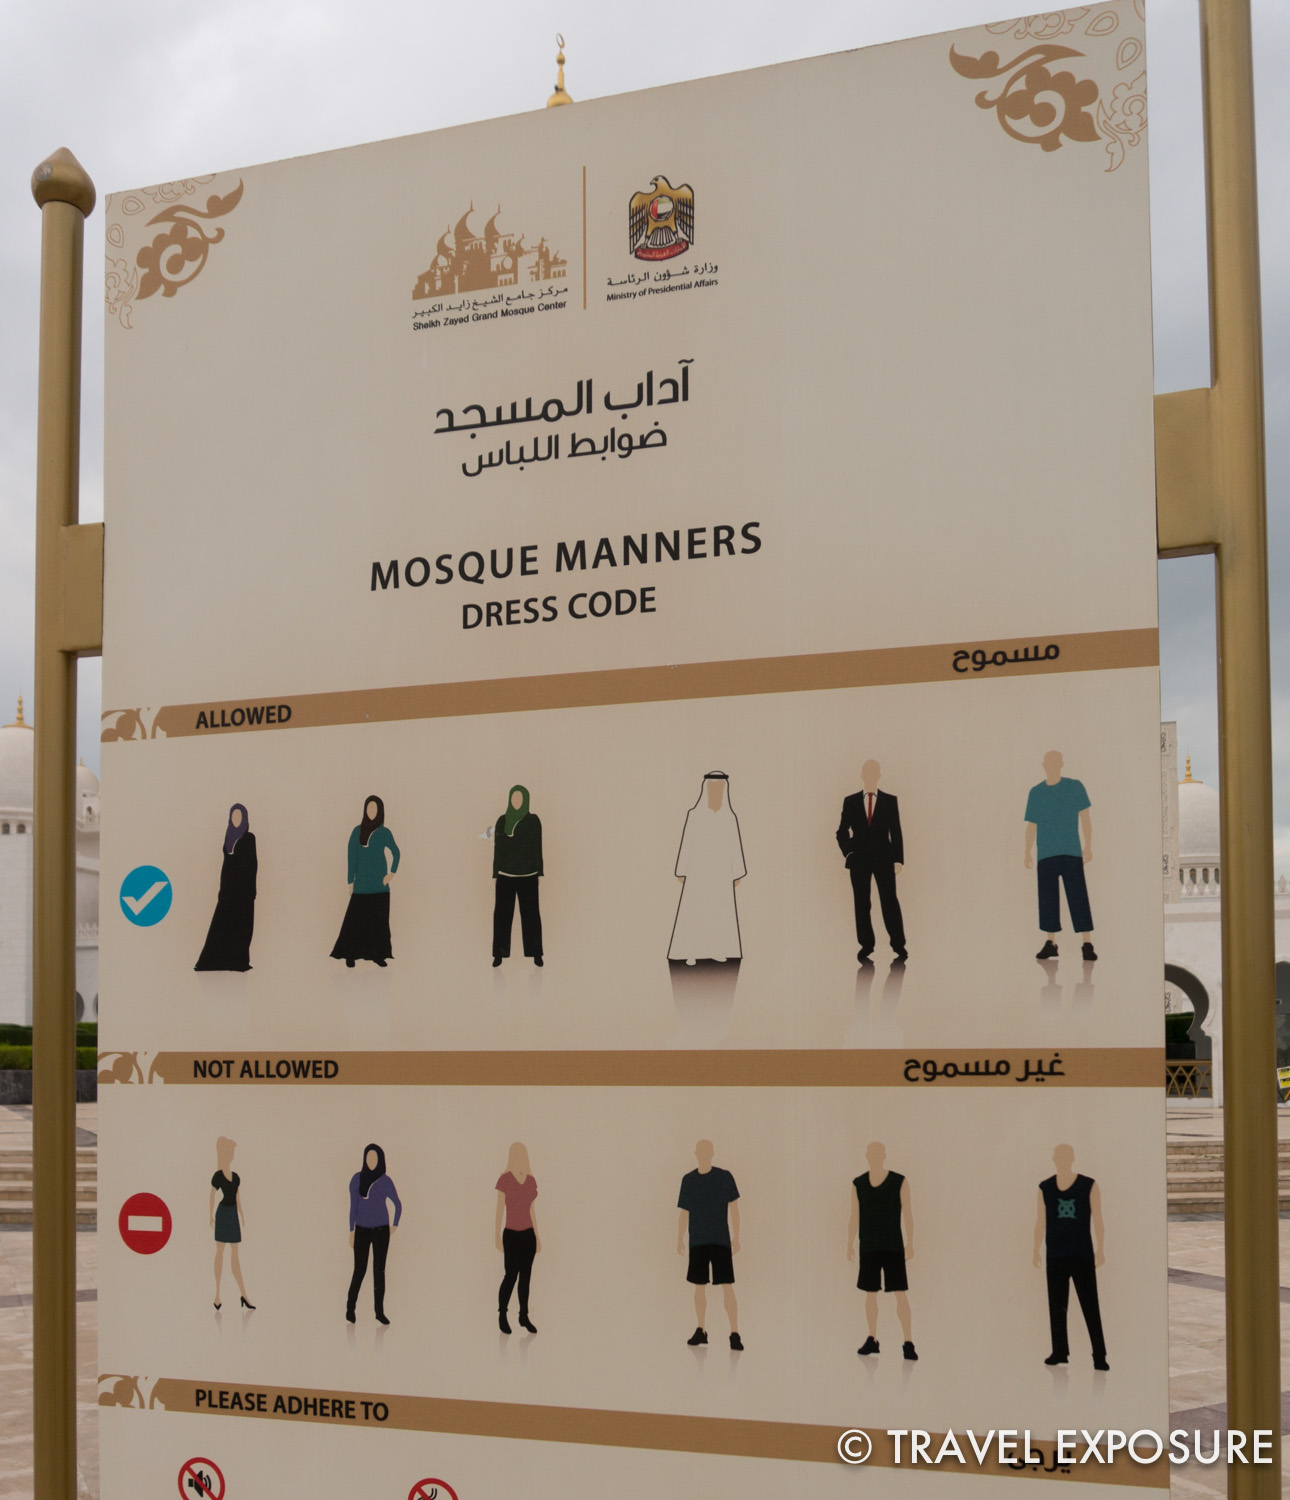 Signs like these are common, and illustrate the dress code you must follow.